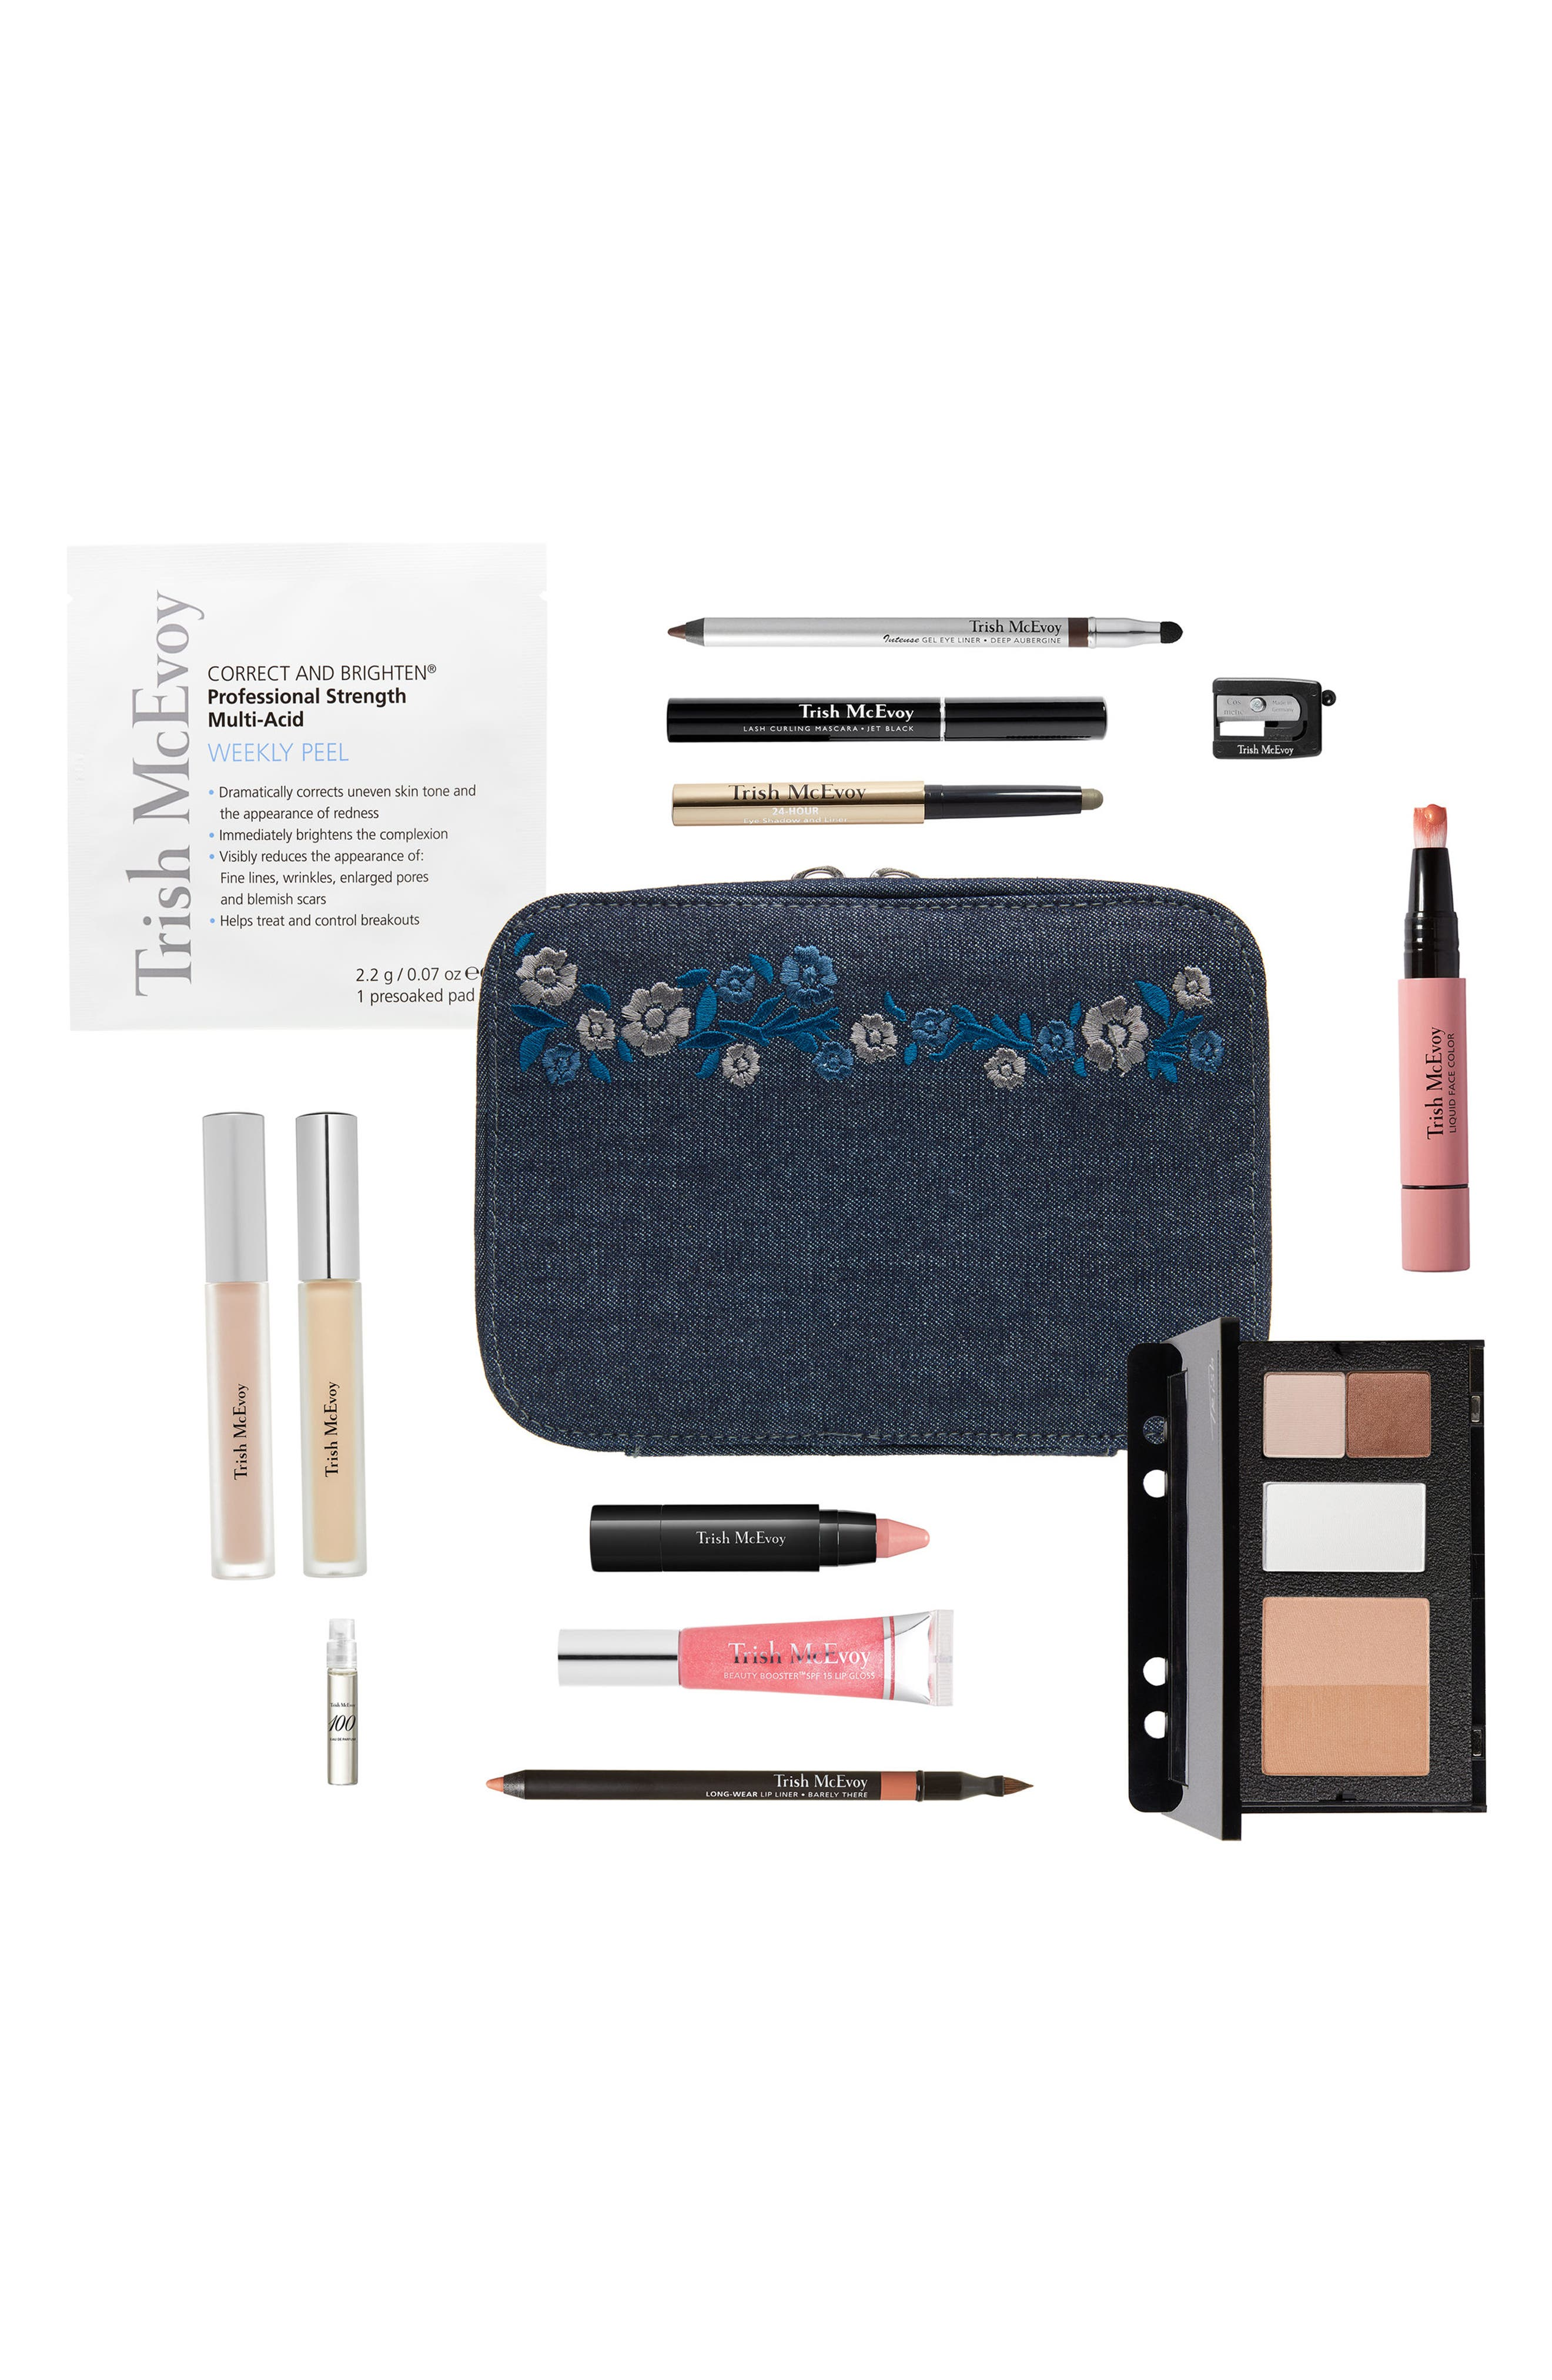 Trish McEvoy The Power of Makeup® Planner Collection Floral Denim (Nordstrom Exclusive) ($515.50 Value)